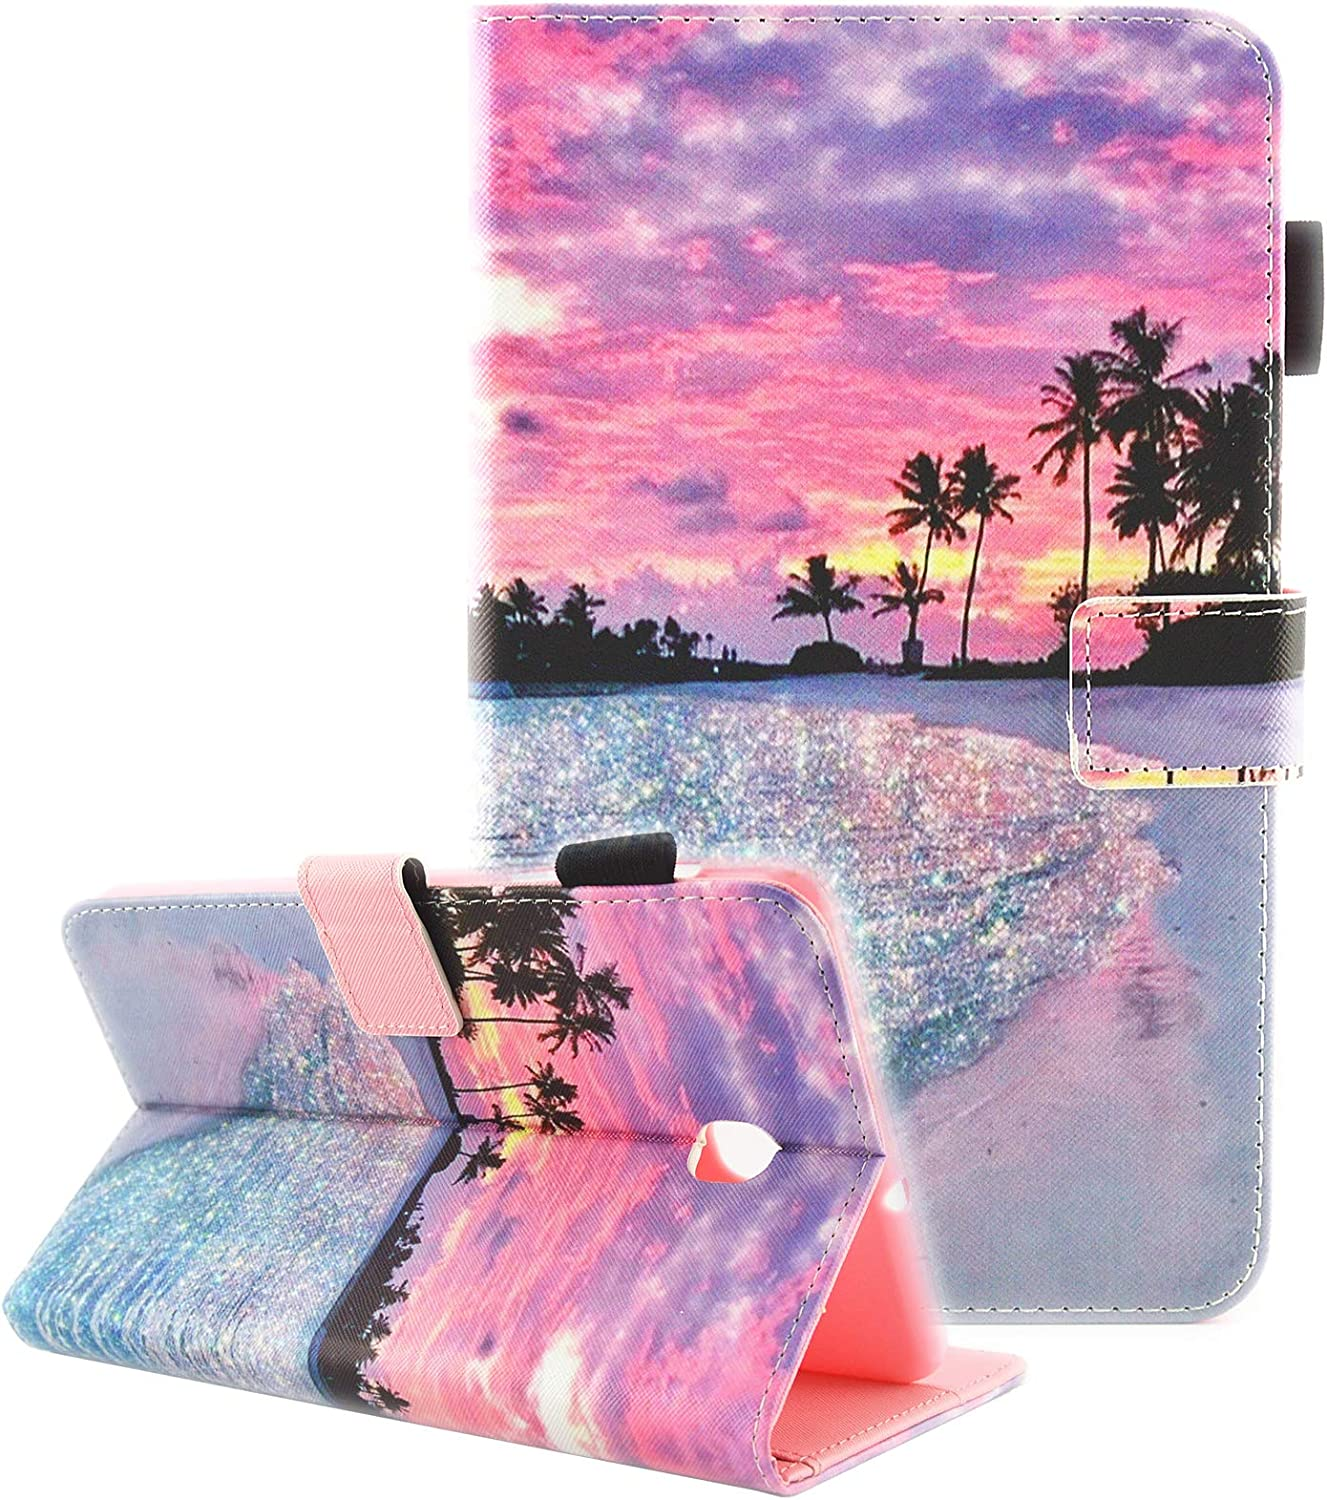 Fvimi Samsung Galaxy Tab A 8.0 2018 Case, T387 Case, PU Leather Multi-Angle Viewing Folio Stand Cover for Samsung Galaxy Tab A 8.0 2018 Model SM-T387 Verizon/Sprint/T-Mobile/AT&T, Dusk Beach